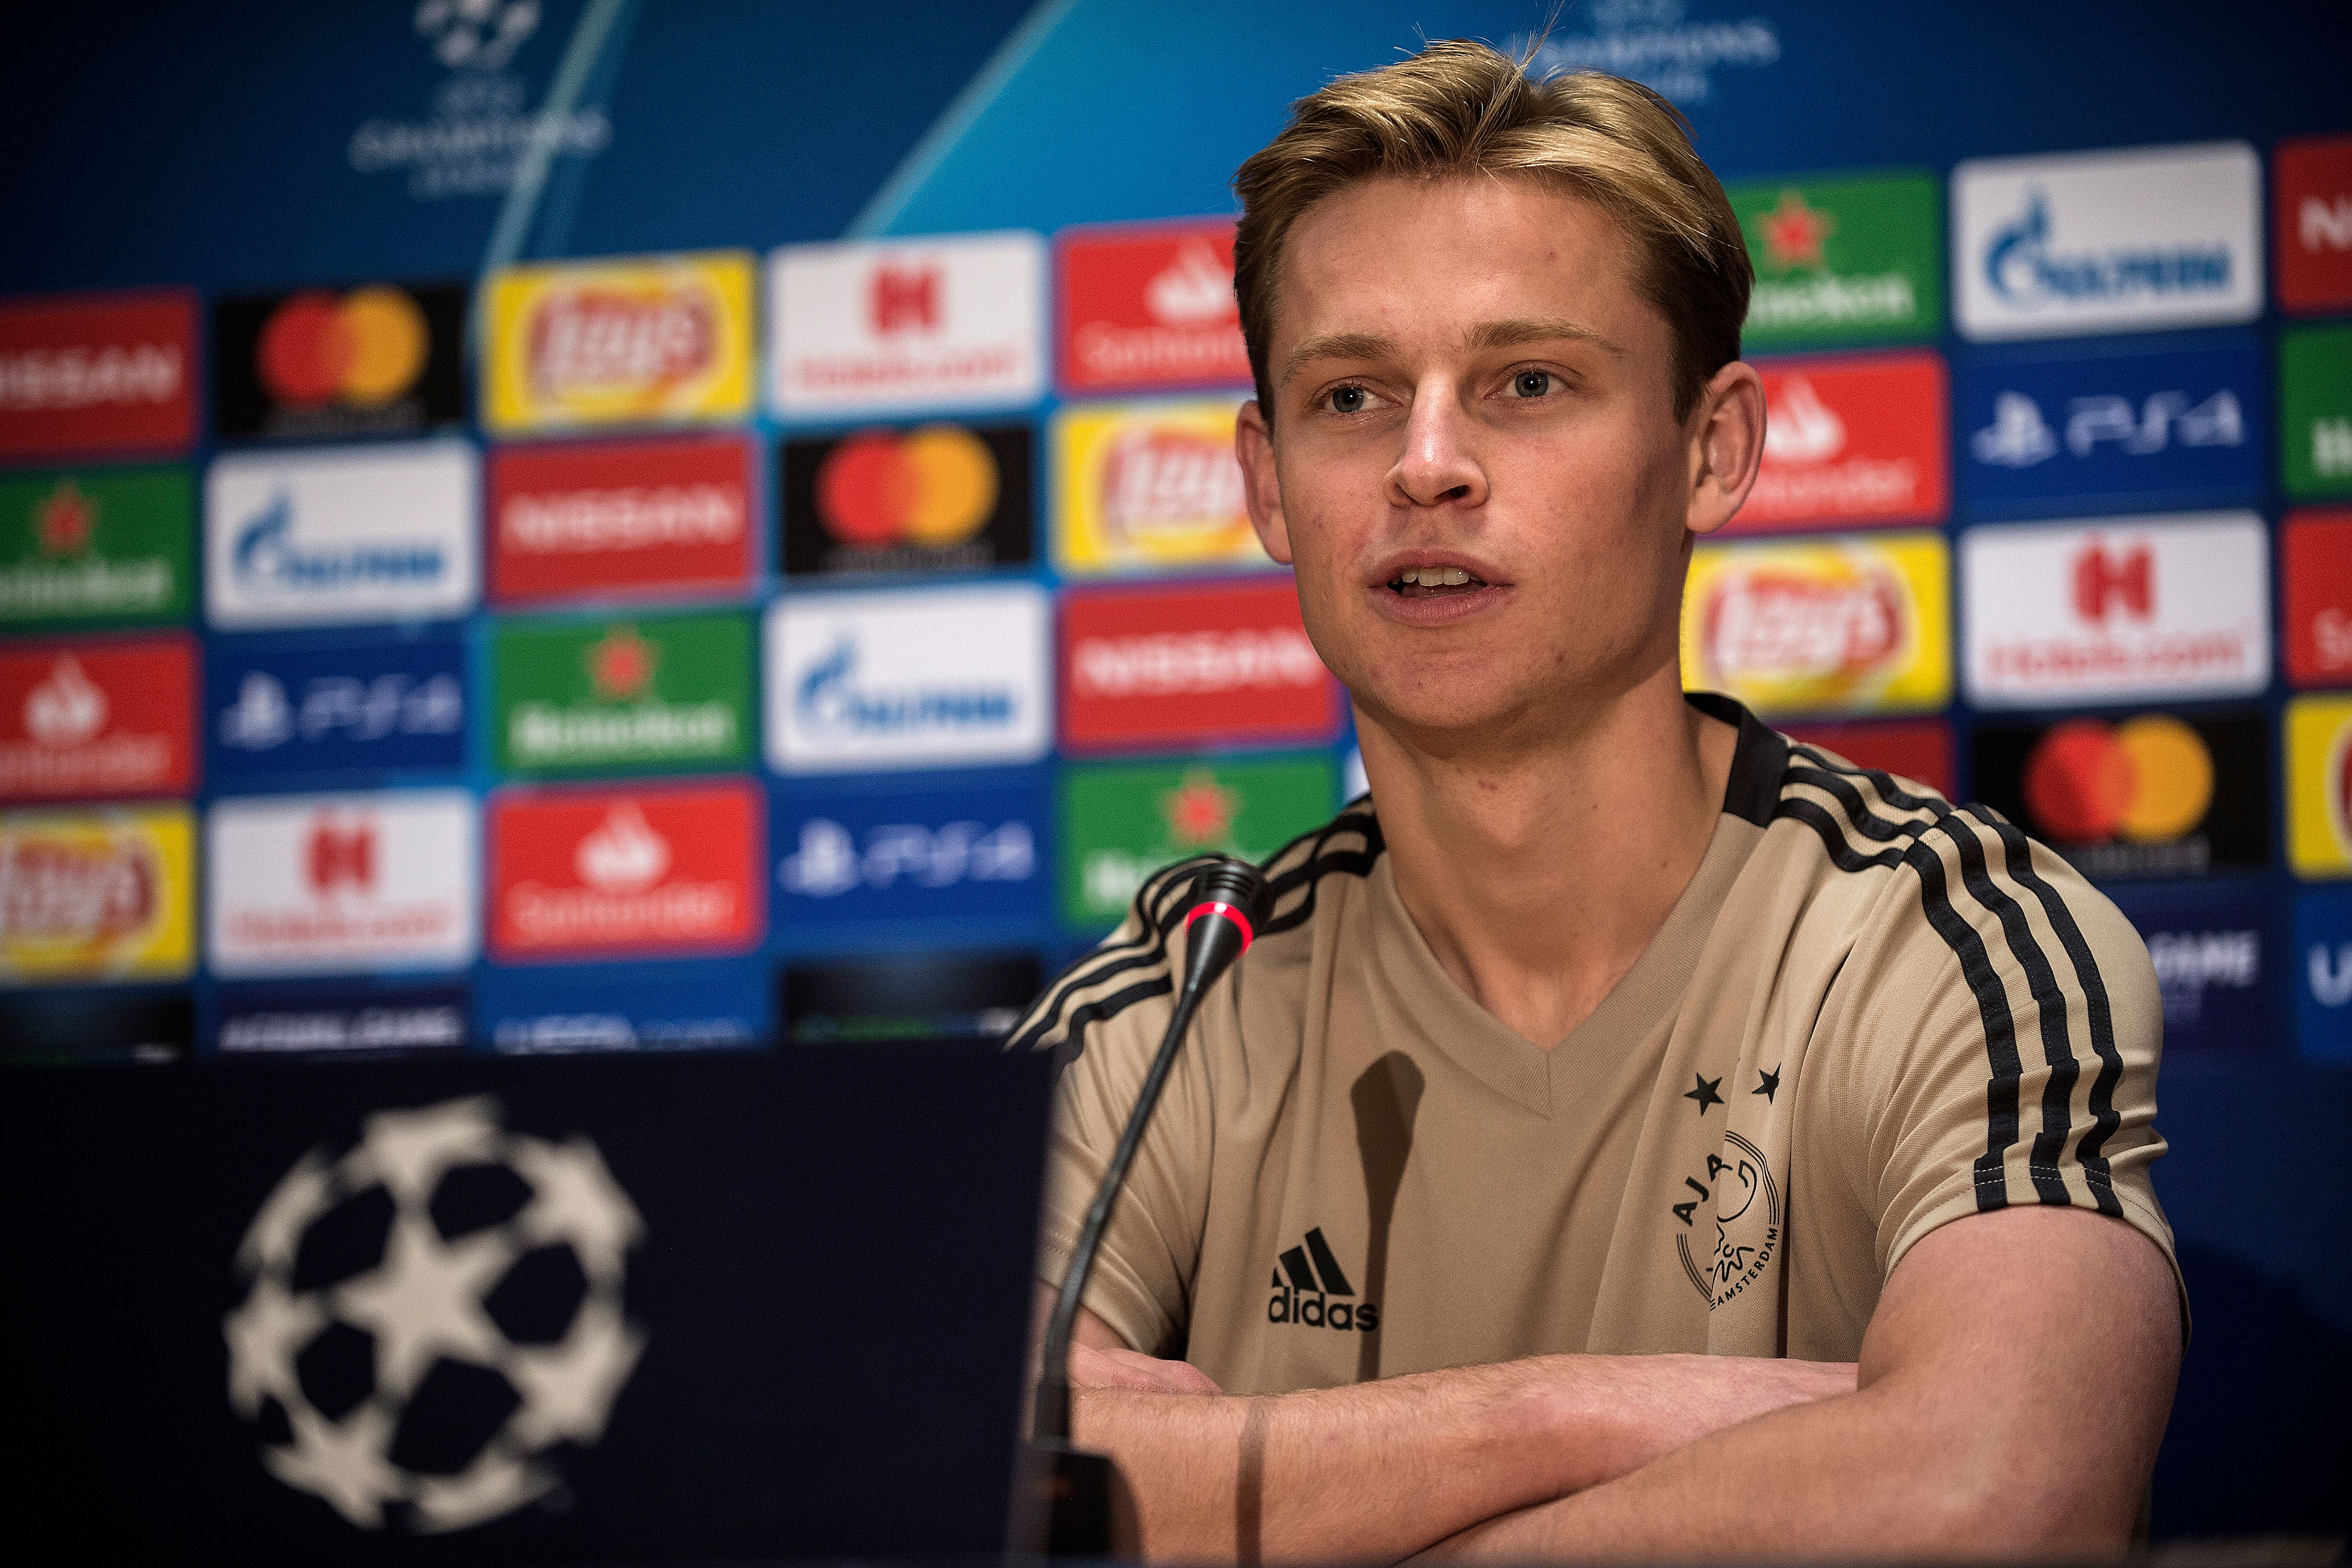 Frenkie de Jong's arrival will scupper Oriol Busquets' chances at Barcelona. (Photo courtesy: AFP/Getty)